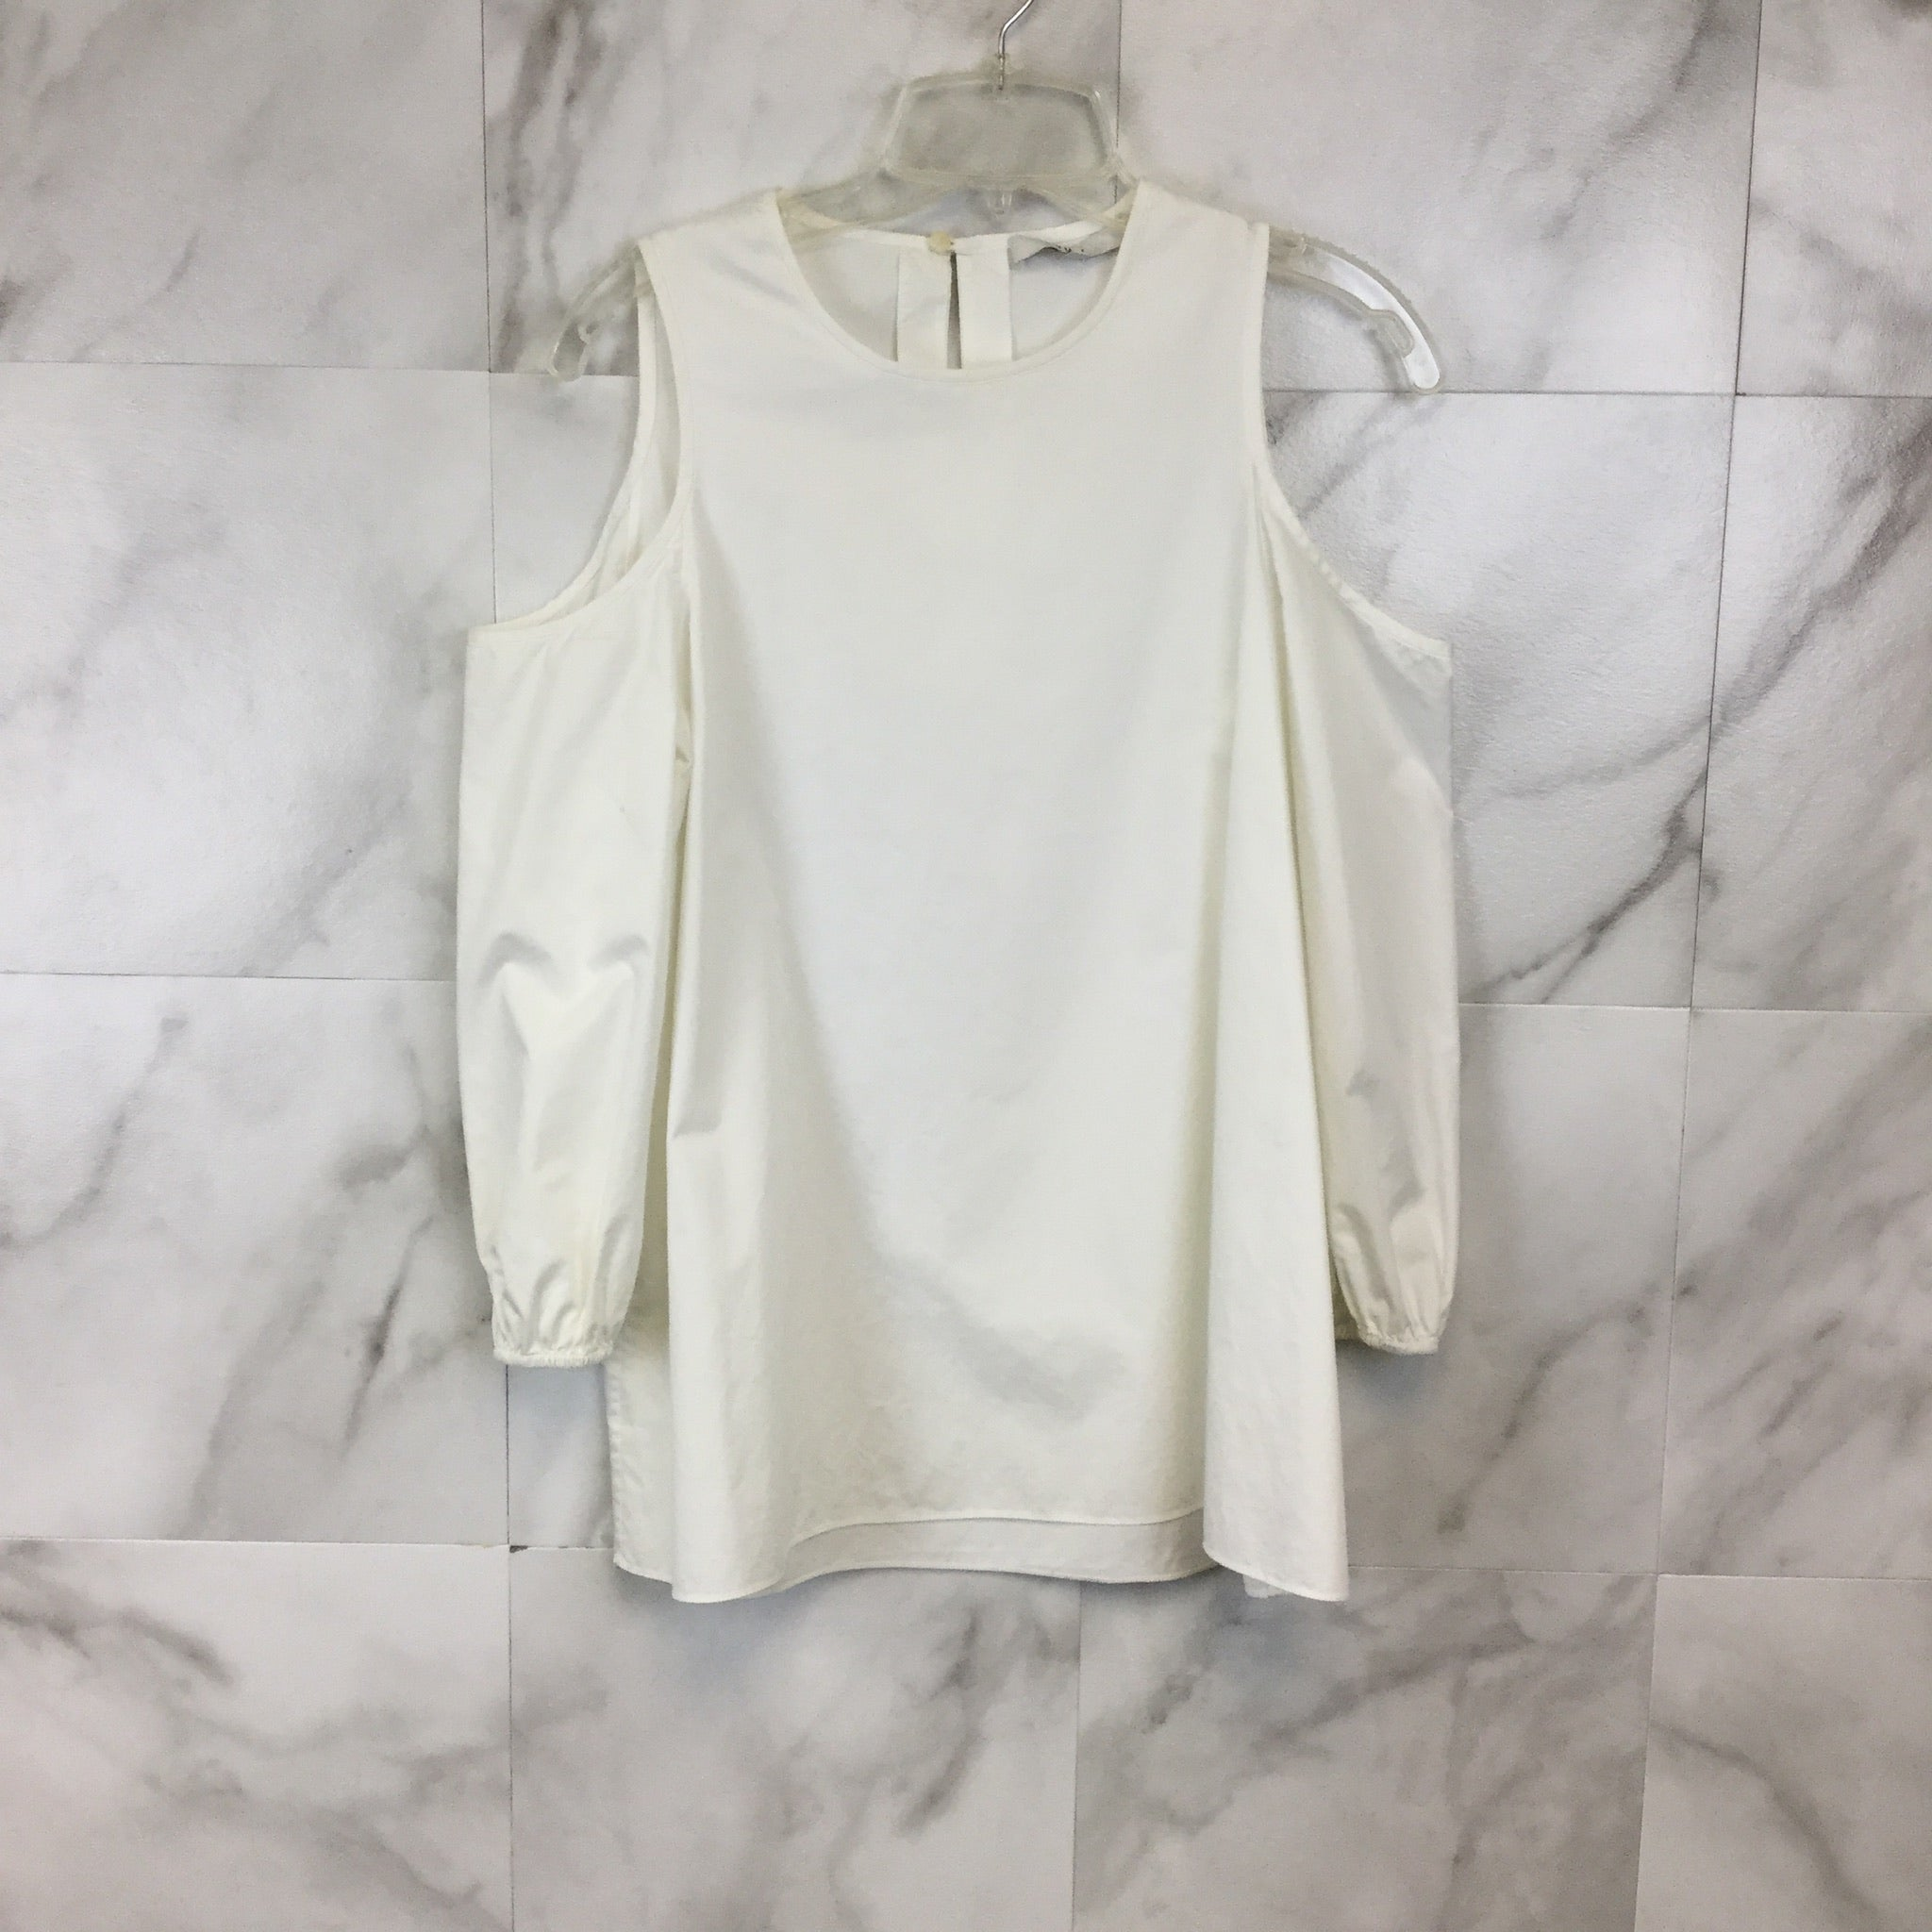 Tibi Satin Poplin Cold Shoulder Top - Size 6